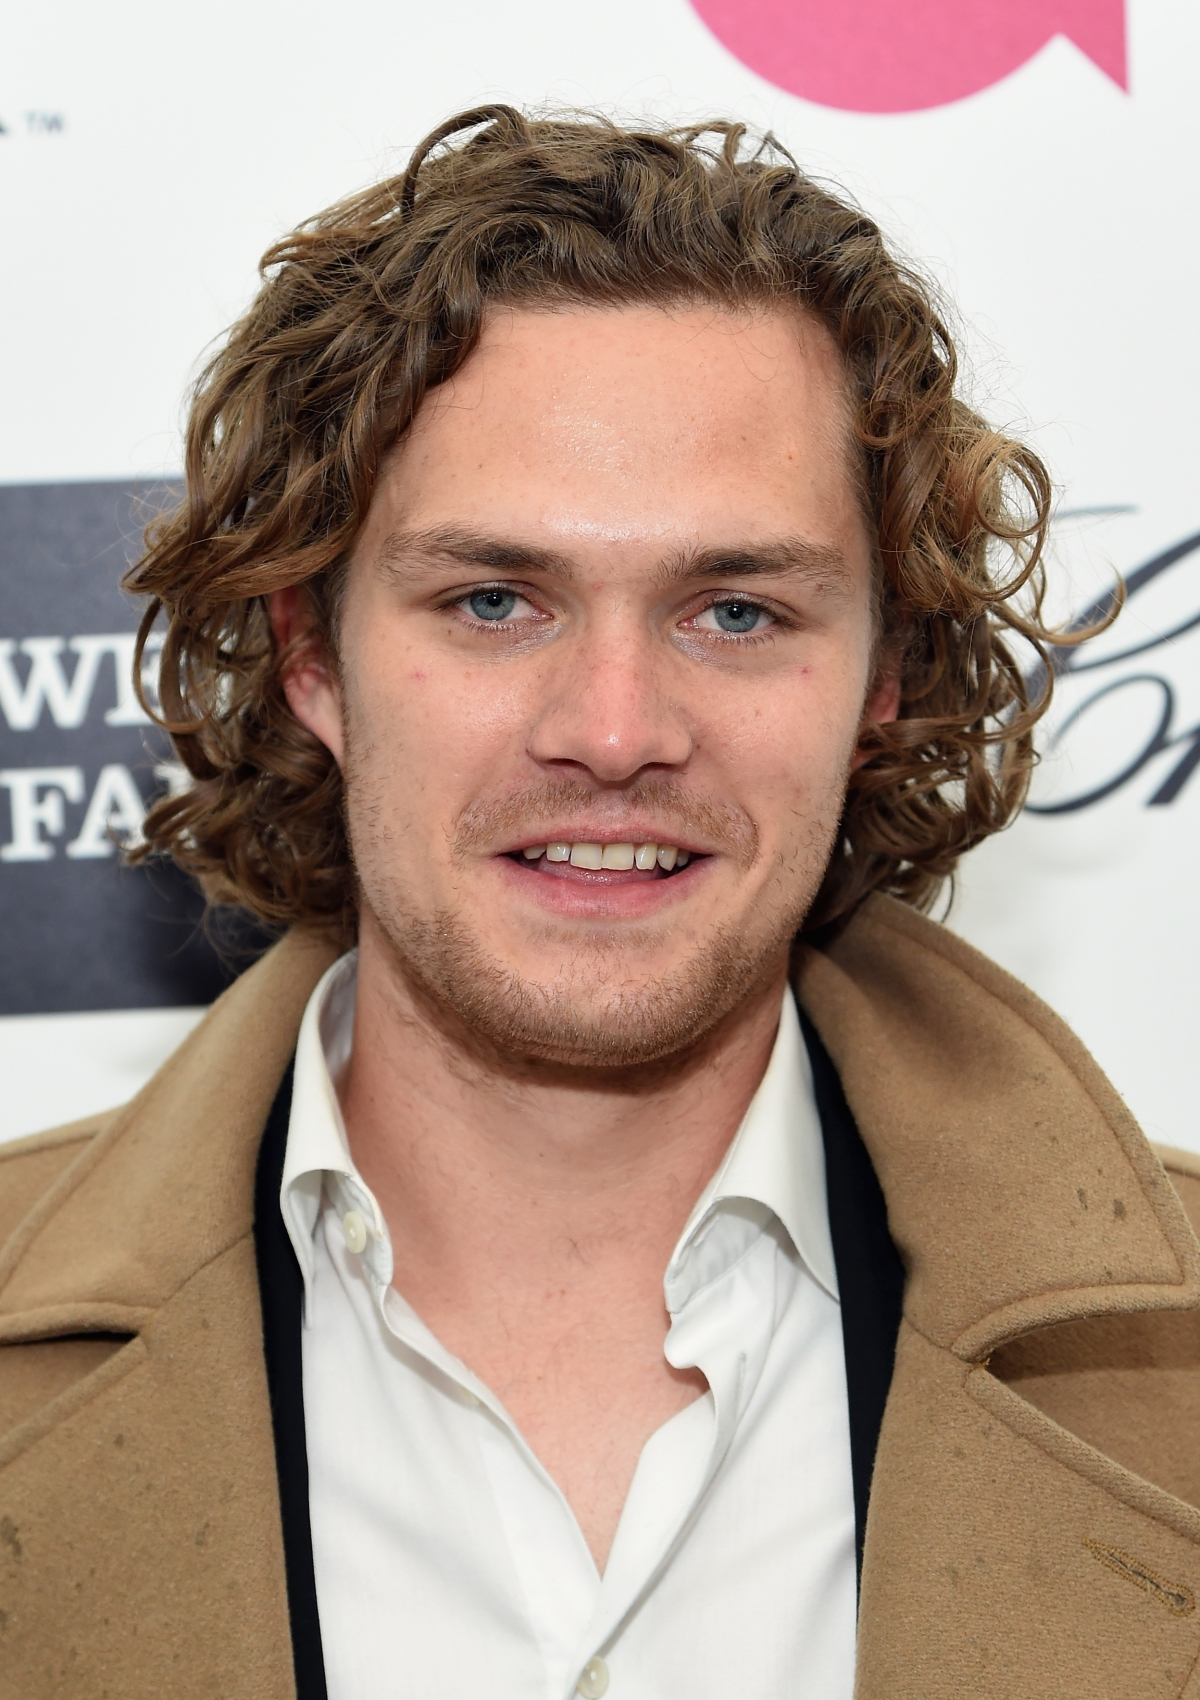 Game Of Thrones actor Finn Jones to play Marvel's Iron Fist